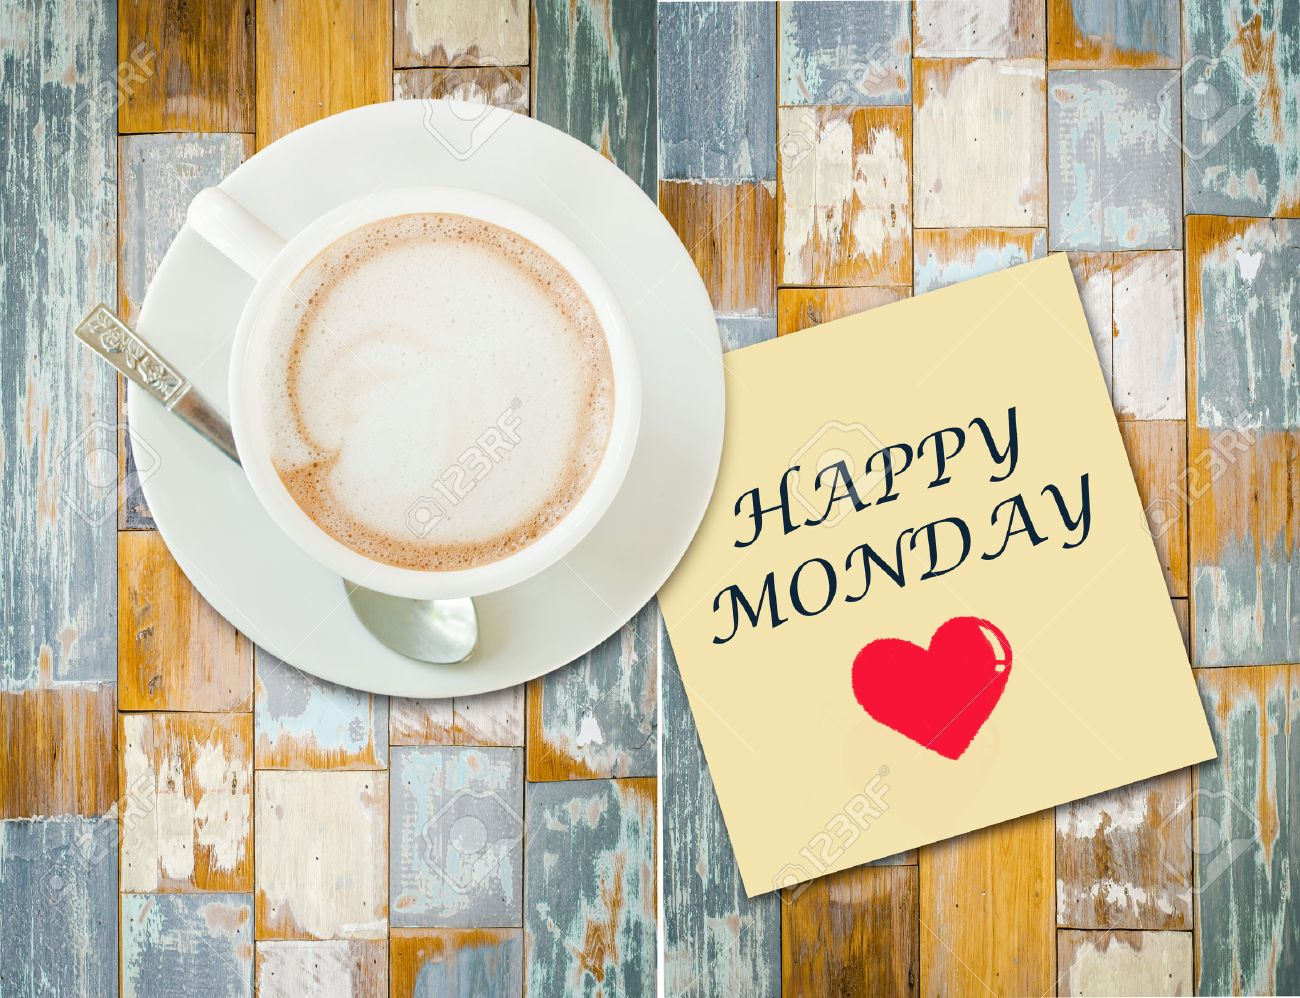 Coffee cup on wood table with paper note and message  Happy Monday Stock Photo - 29747865